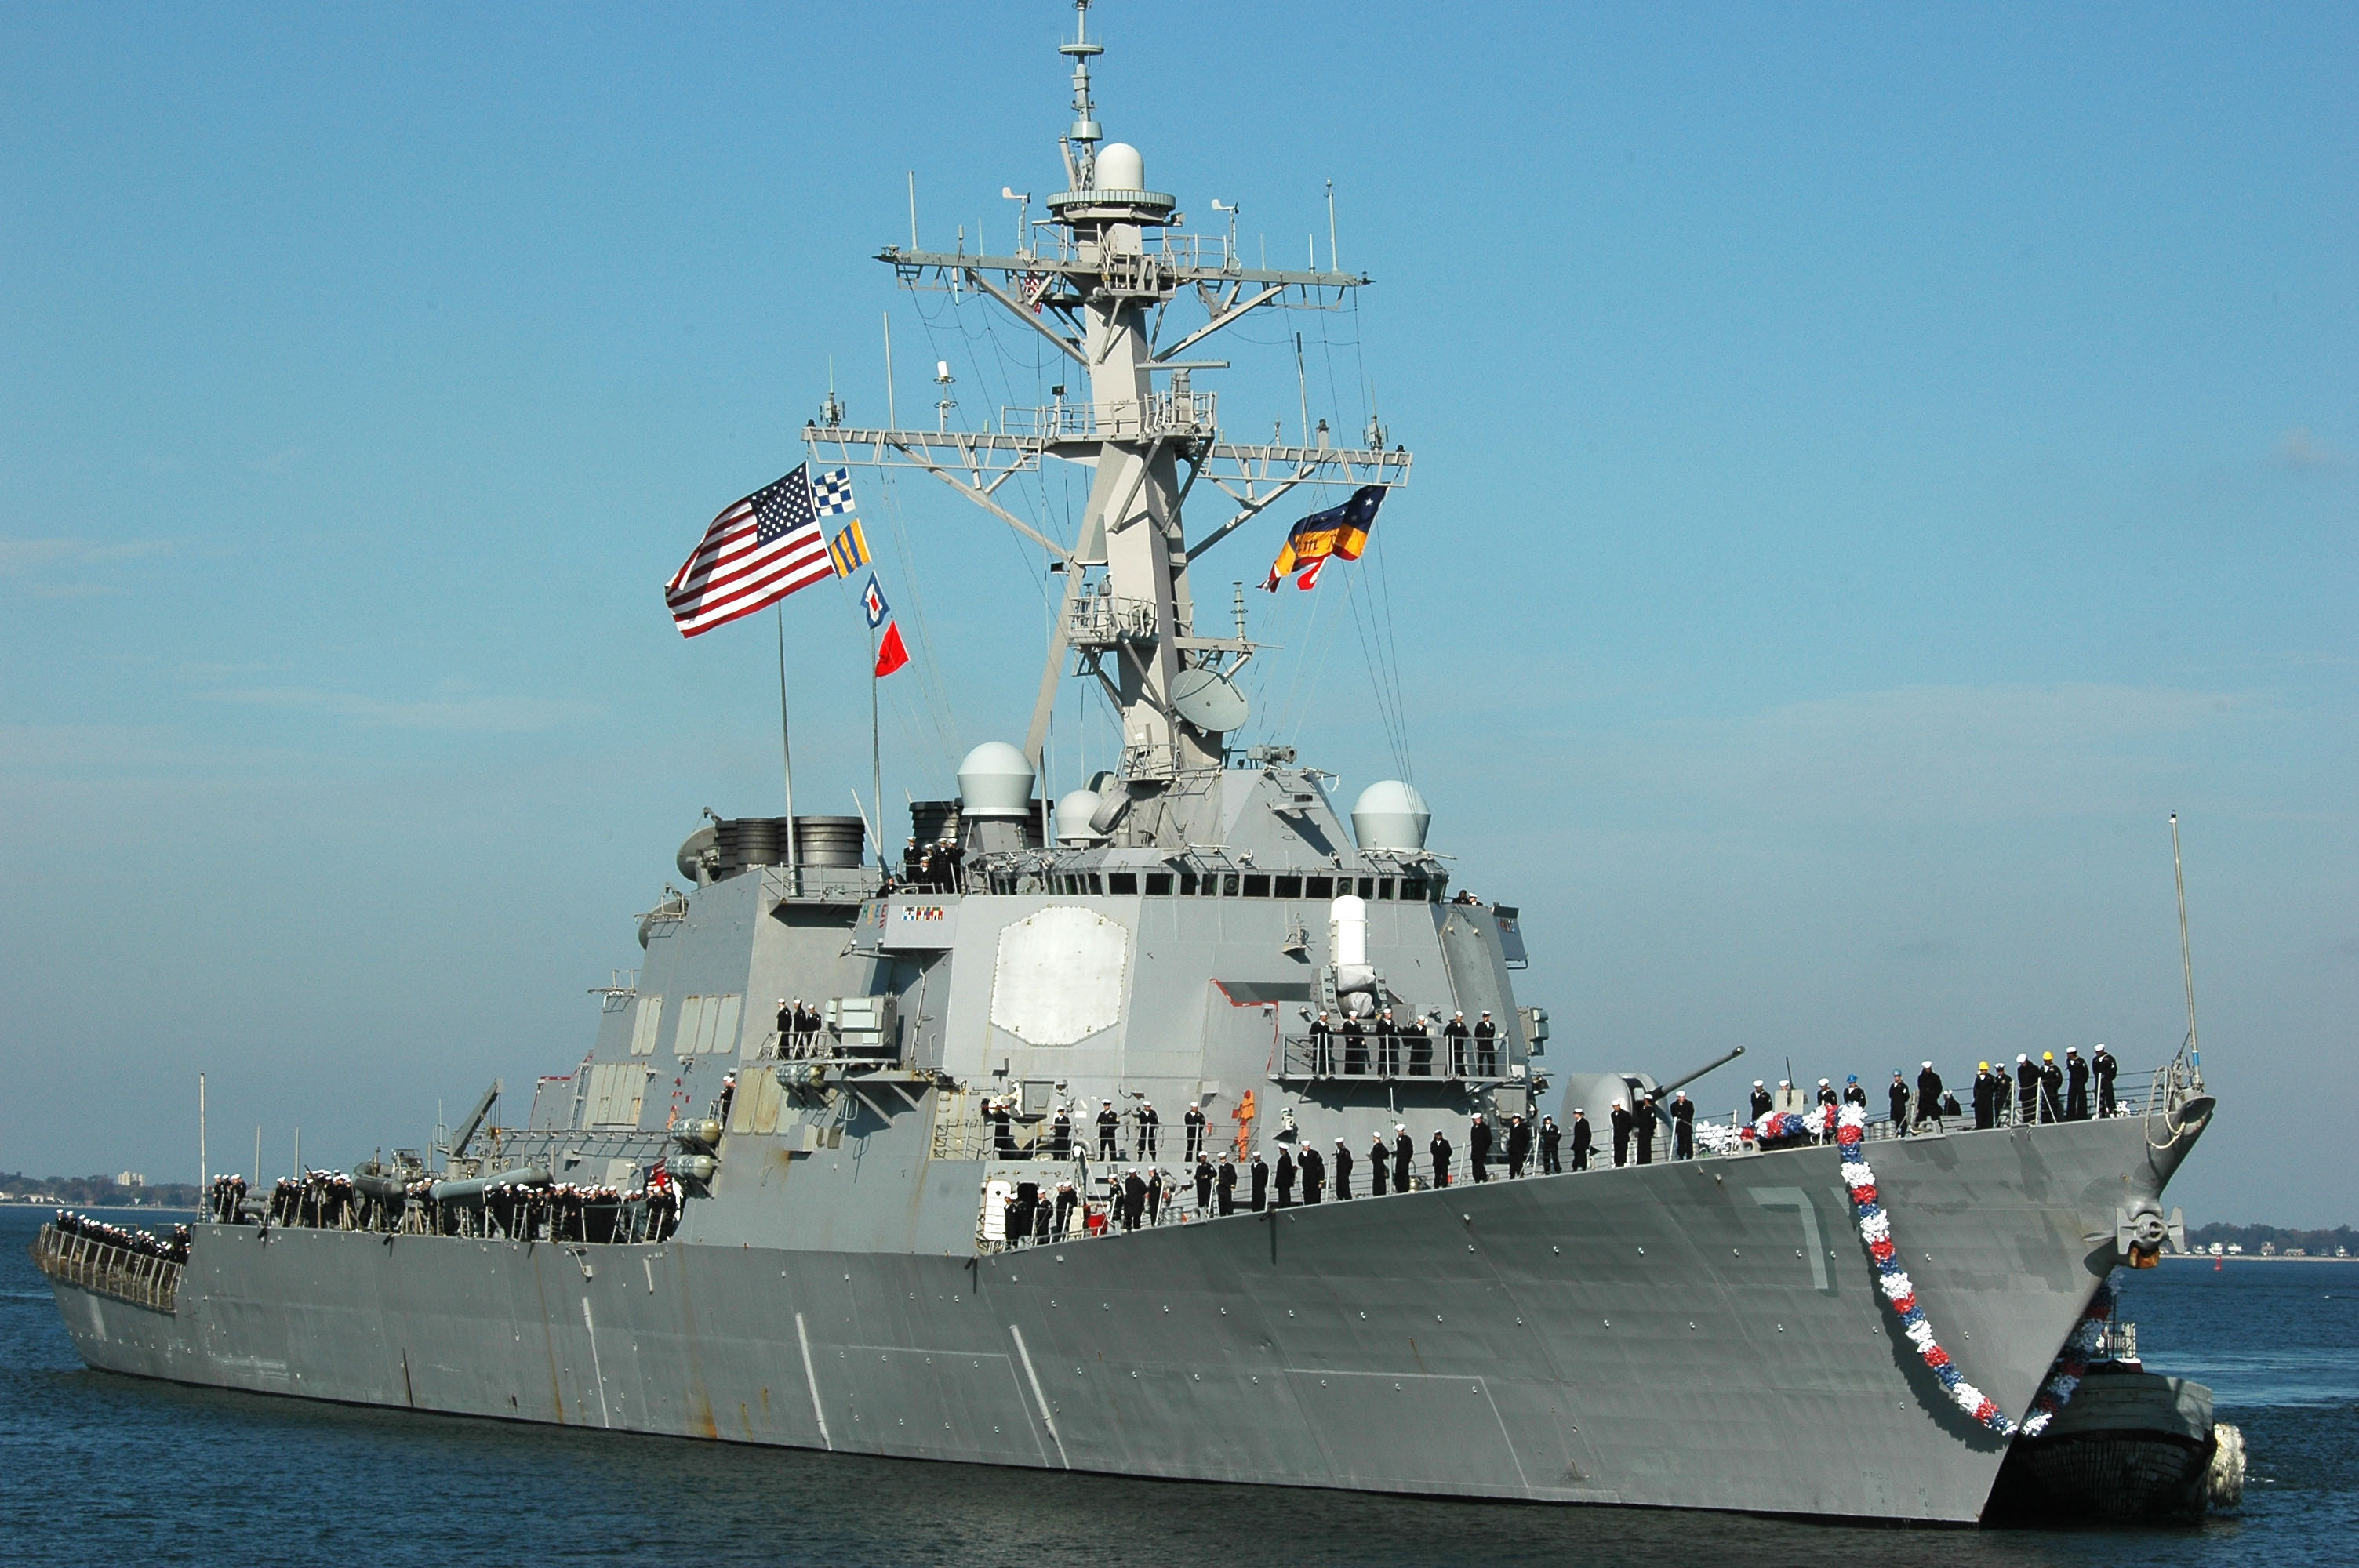 USS Ross HomecomingPhoto approved for release by MC1(SW) Stefanie Holzeisen-mullen, Fleet Public Affairs Center, Atlantic, (757) 444-4199 x 344